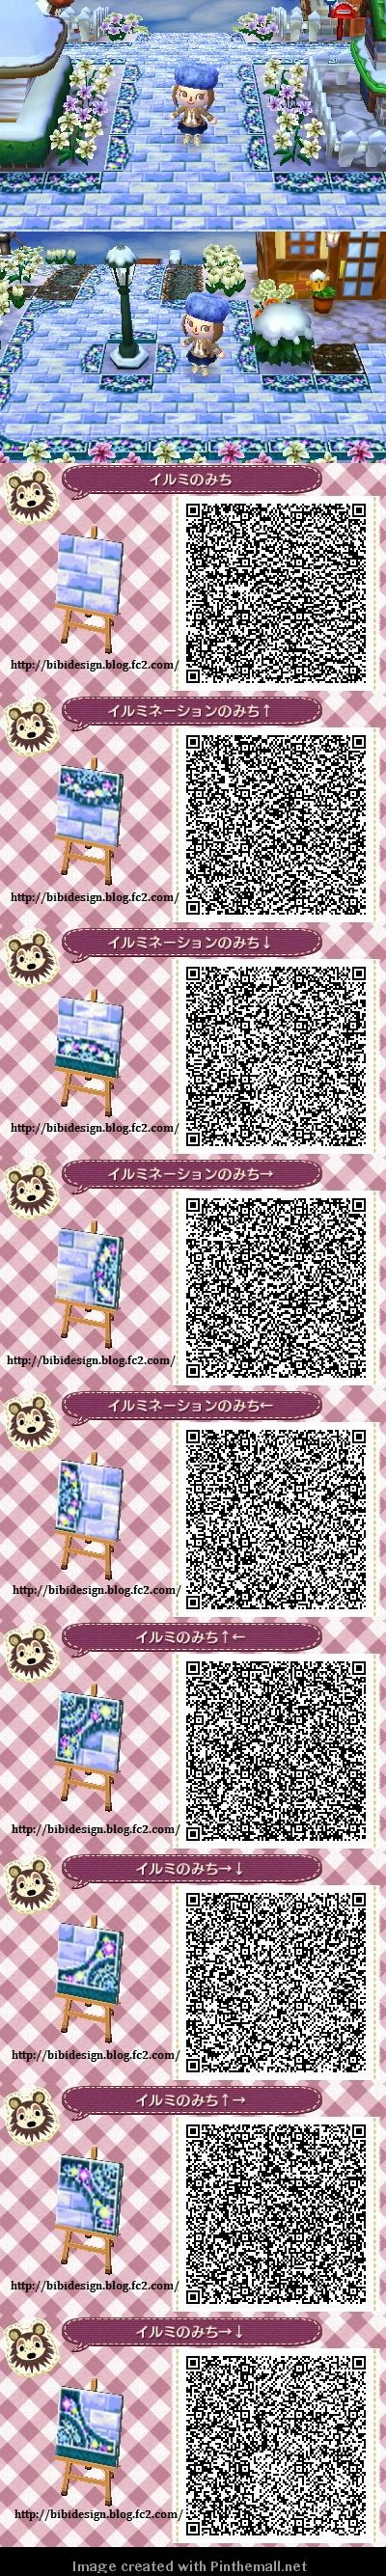 Animal crossing new leaf qr code acnl winter path qr Boden qr codes animal crossing new leaf